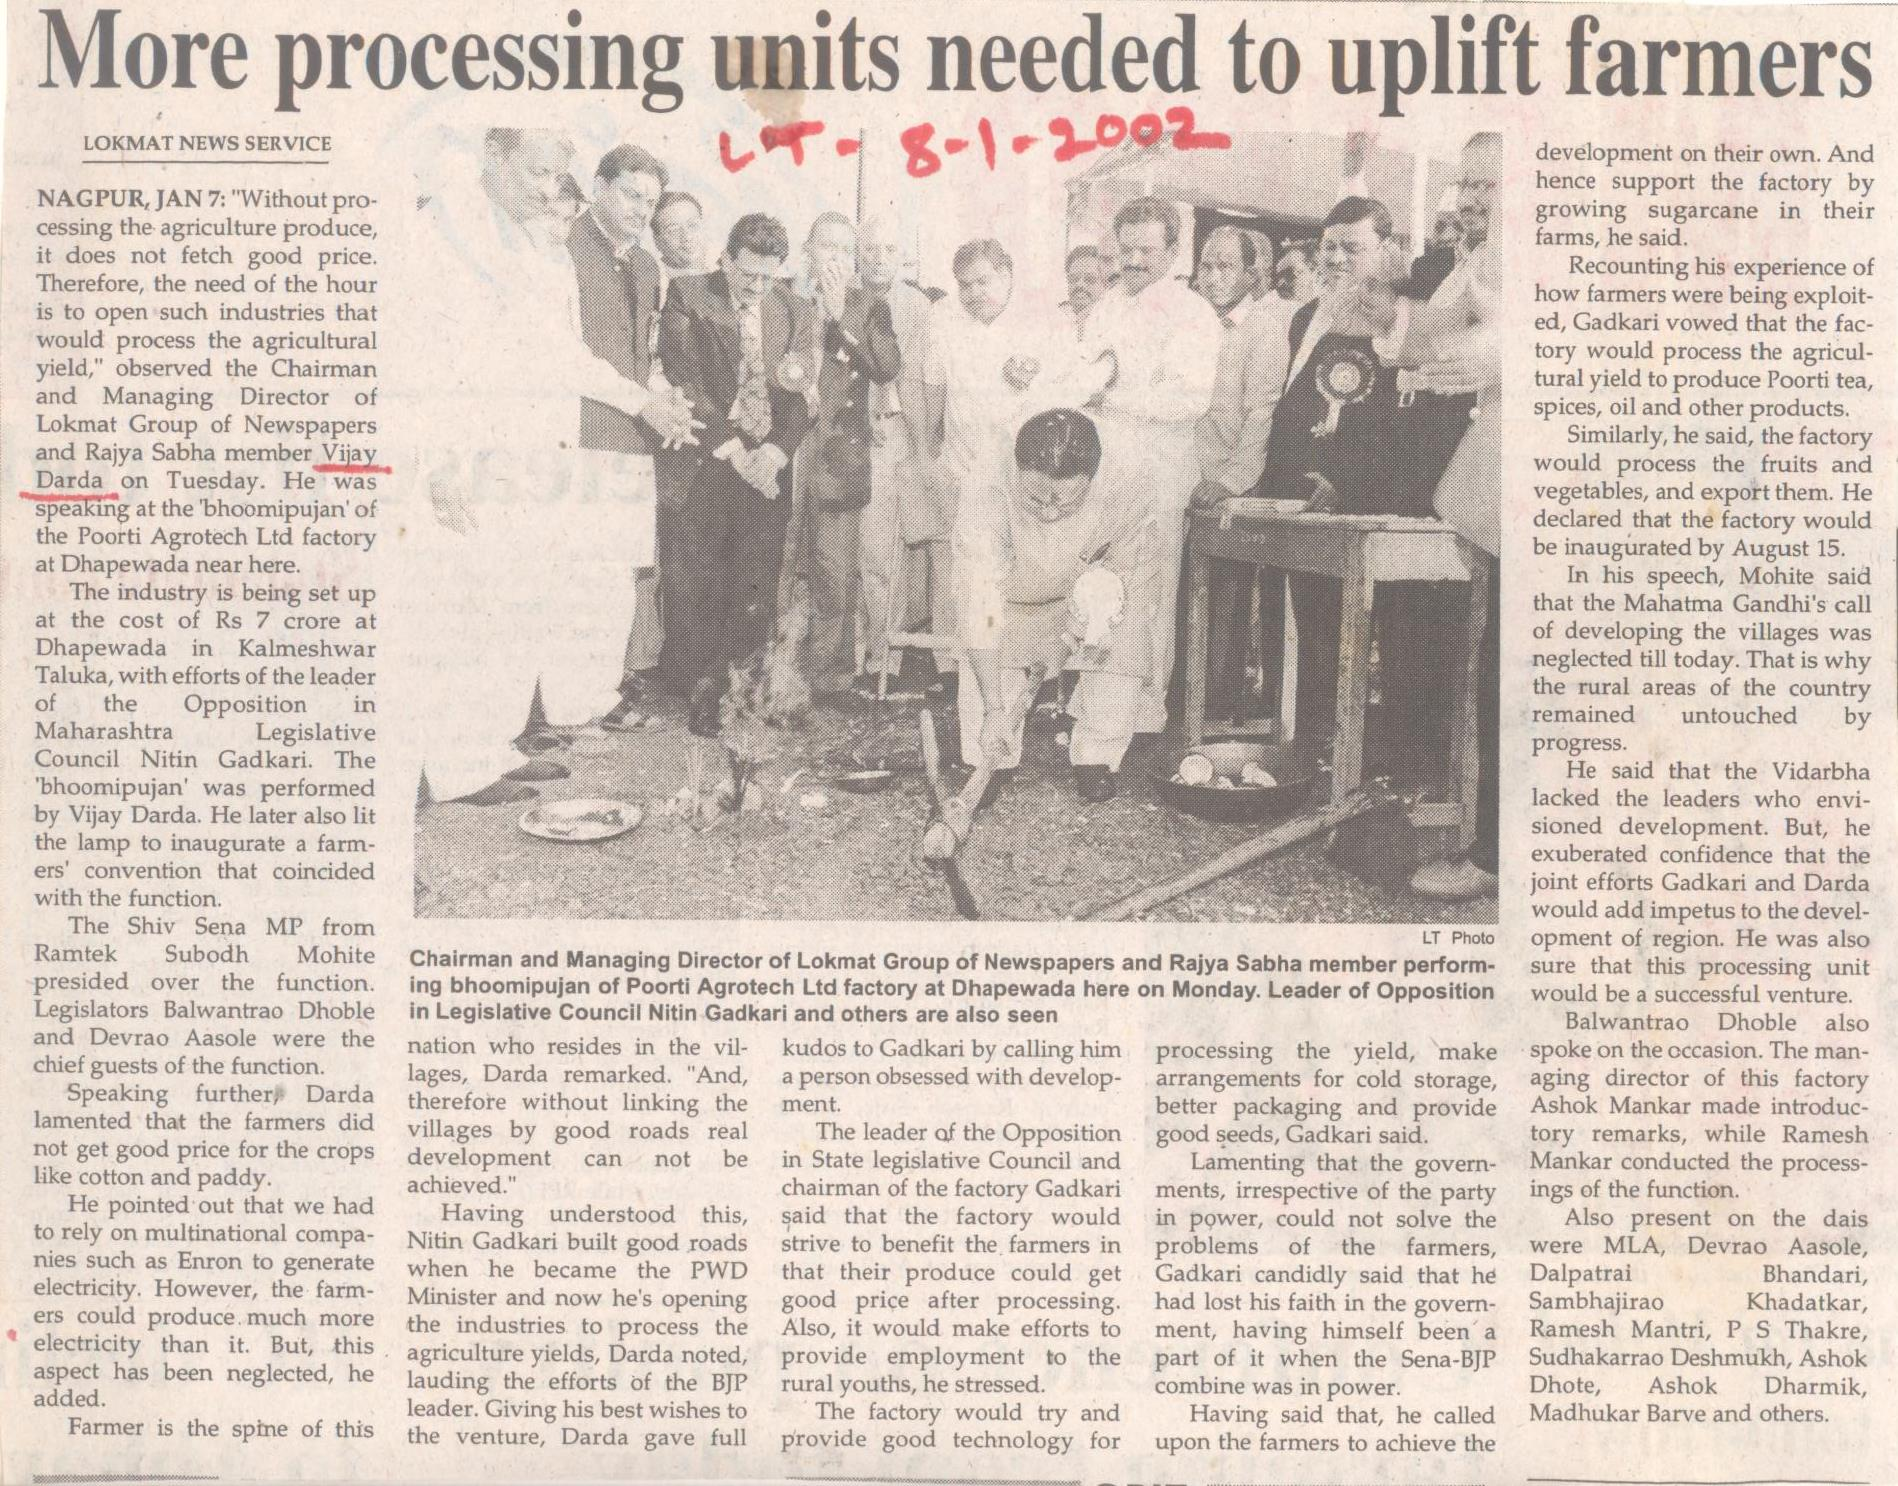 More processing units needed to uplift farmers